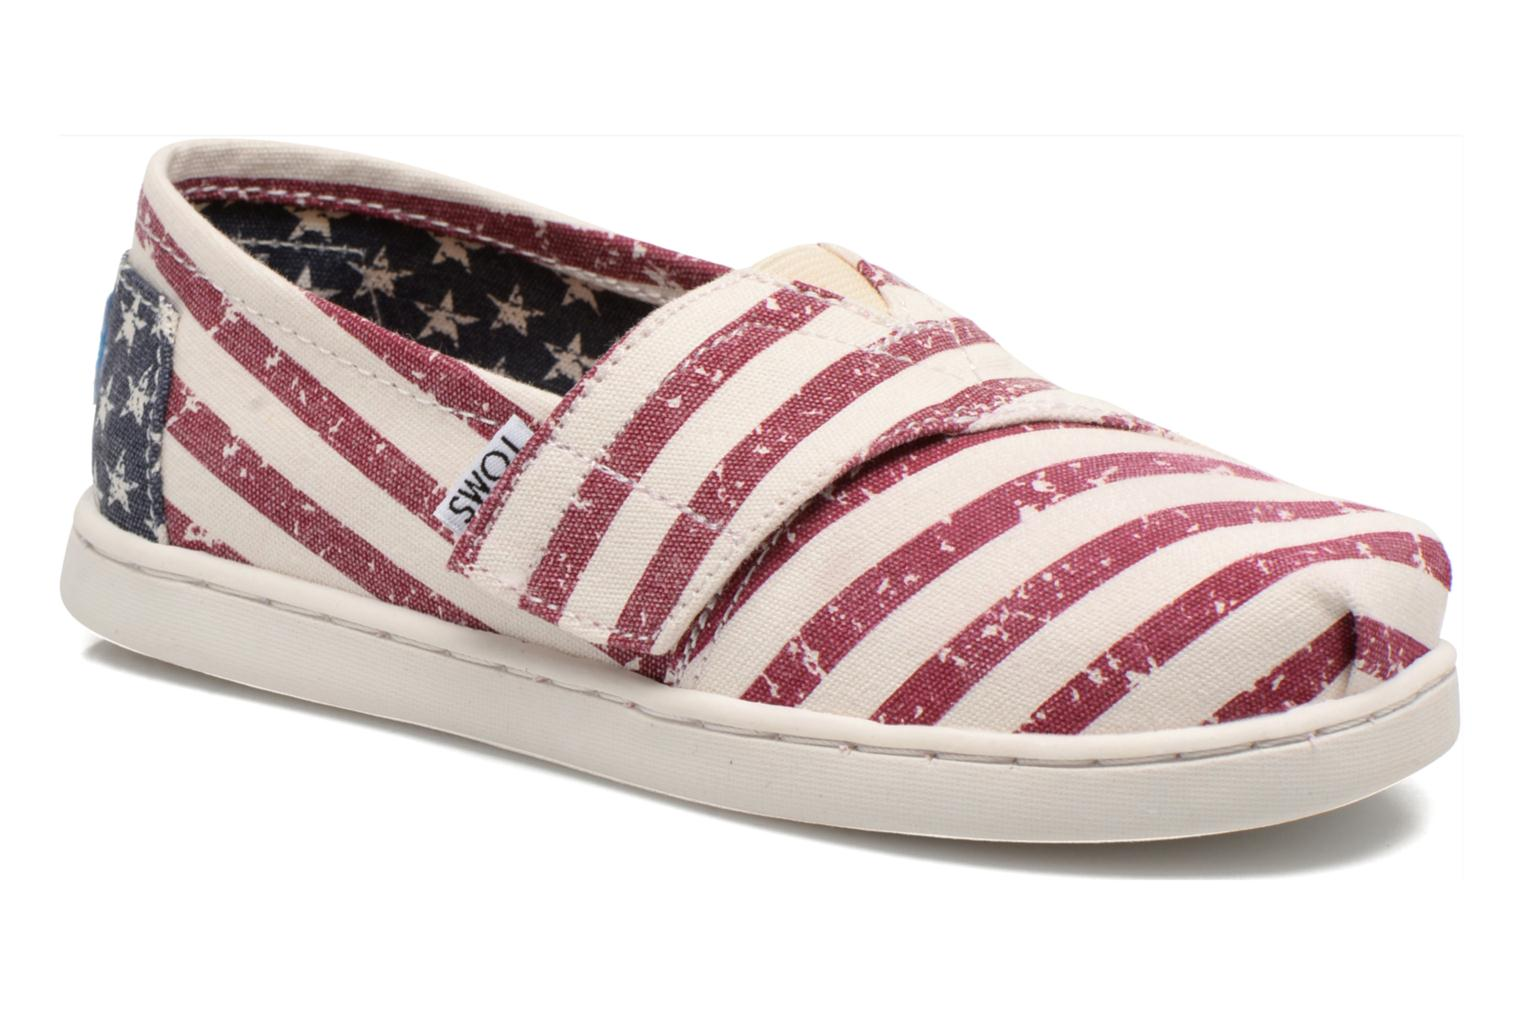 Sneakers Seasonal Classics Kids by TOMS